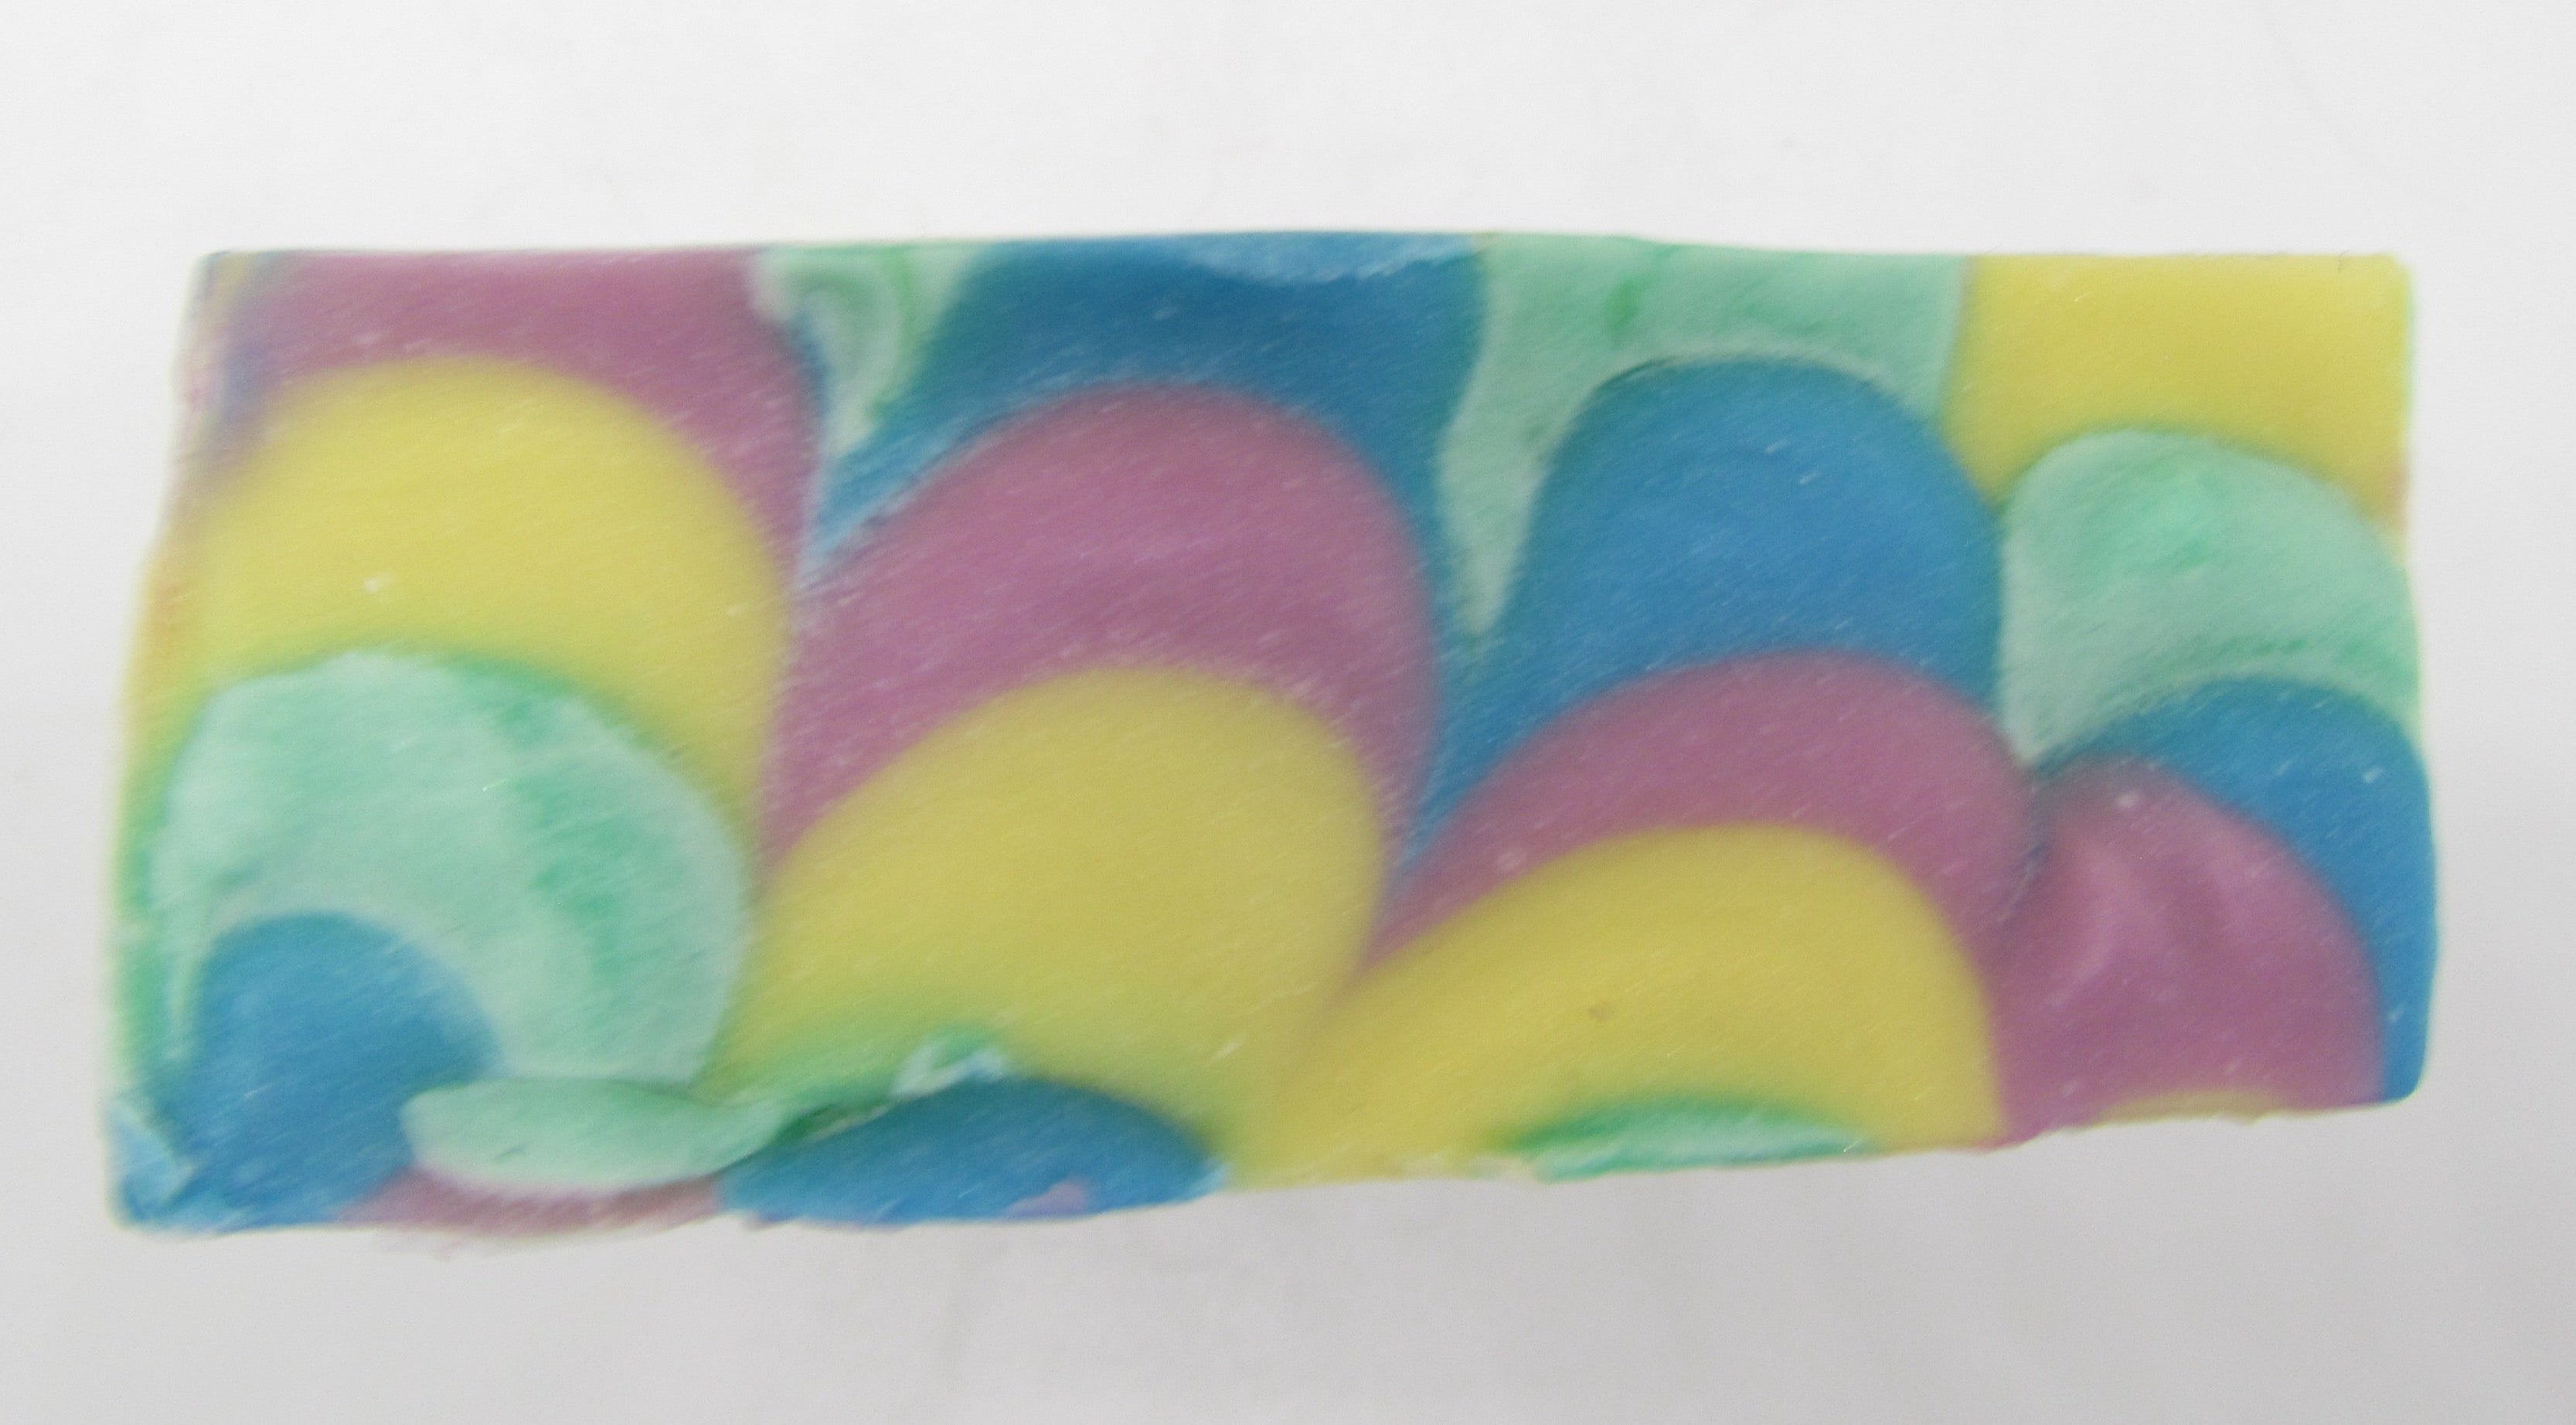 Pine and Bedford's Rainbow Columns Soap (top). As is above is below. The top of this soap is also a rainbow -- with layers of yellow, pink, blue, and green in a waved pattern almost like a feather.